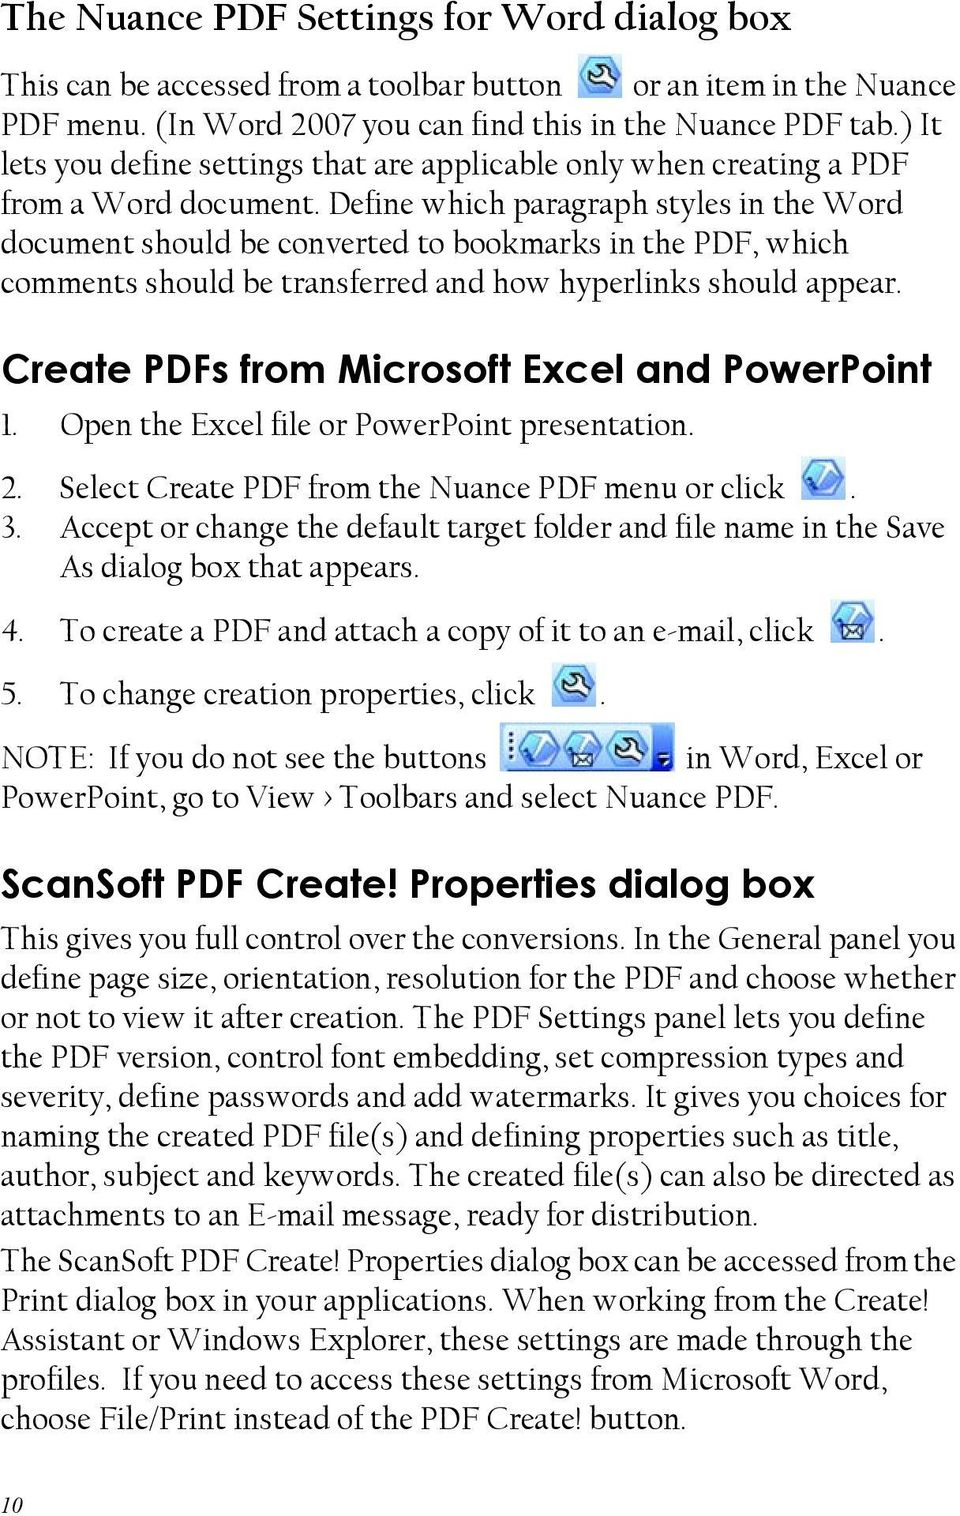 Define which paragraph styles in the Word document should be converted to bookmarks in the PDF, which comments should be transferred and how hyperlinks should appear.